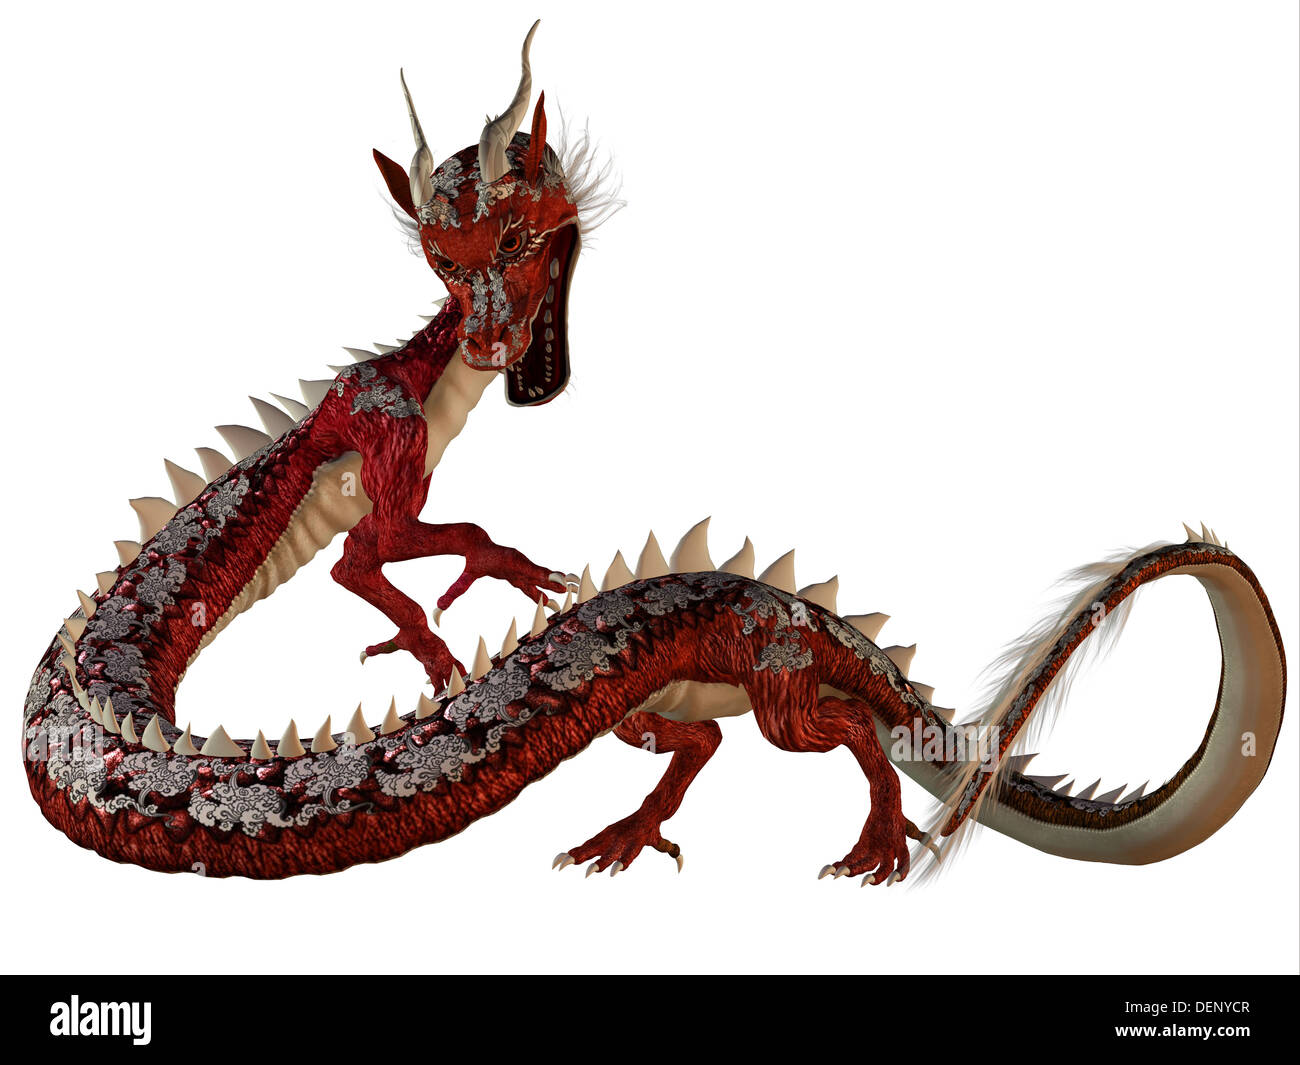 A creature of myth and fantasy the dragon is a fierce monster with horns and large teeth. - Stock Image